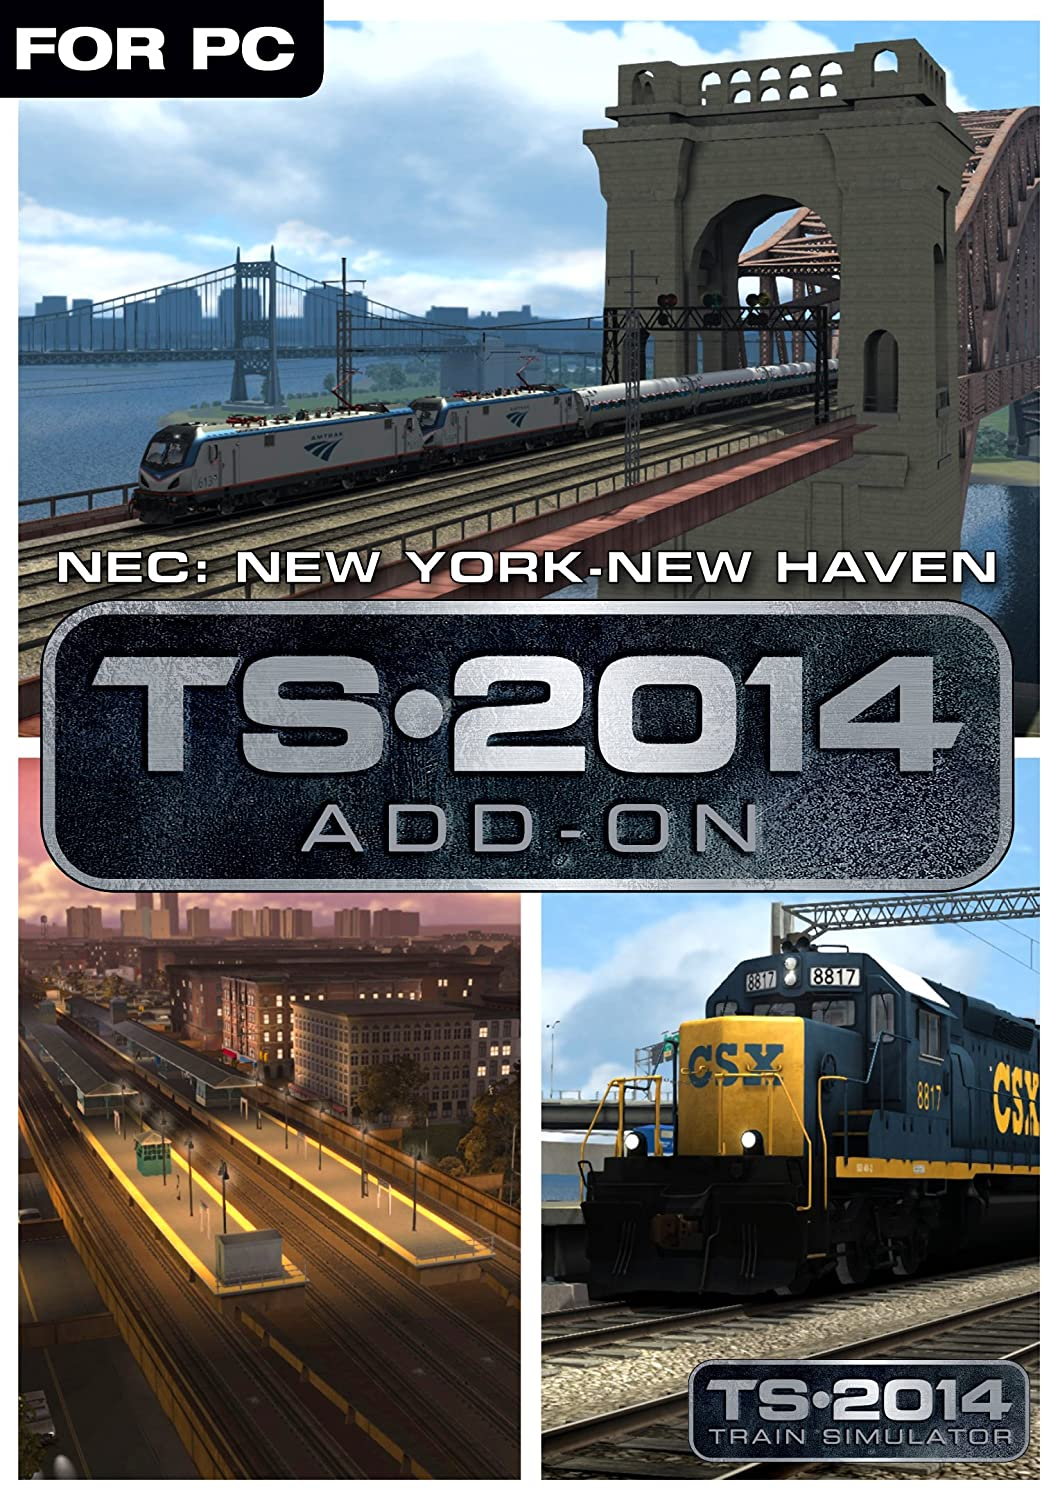 NEC: Finally resale start New York-New Direct store Haven Route Online Code Add-On Game